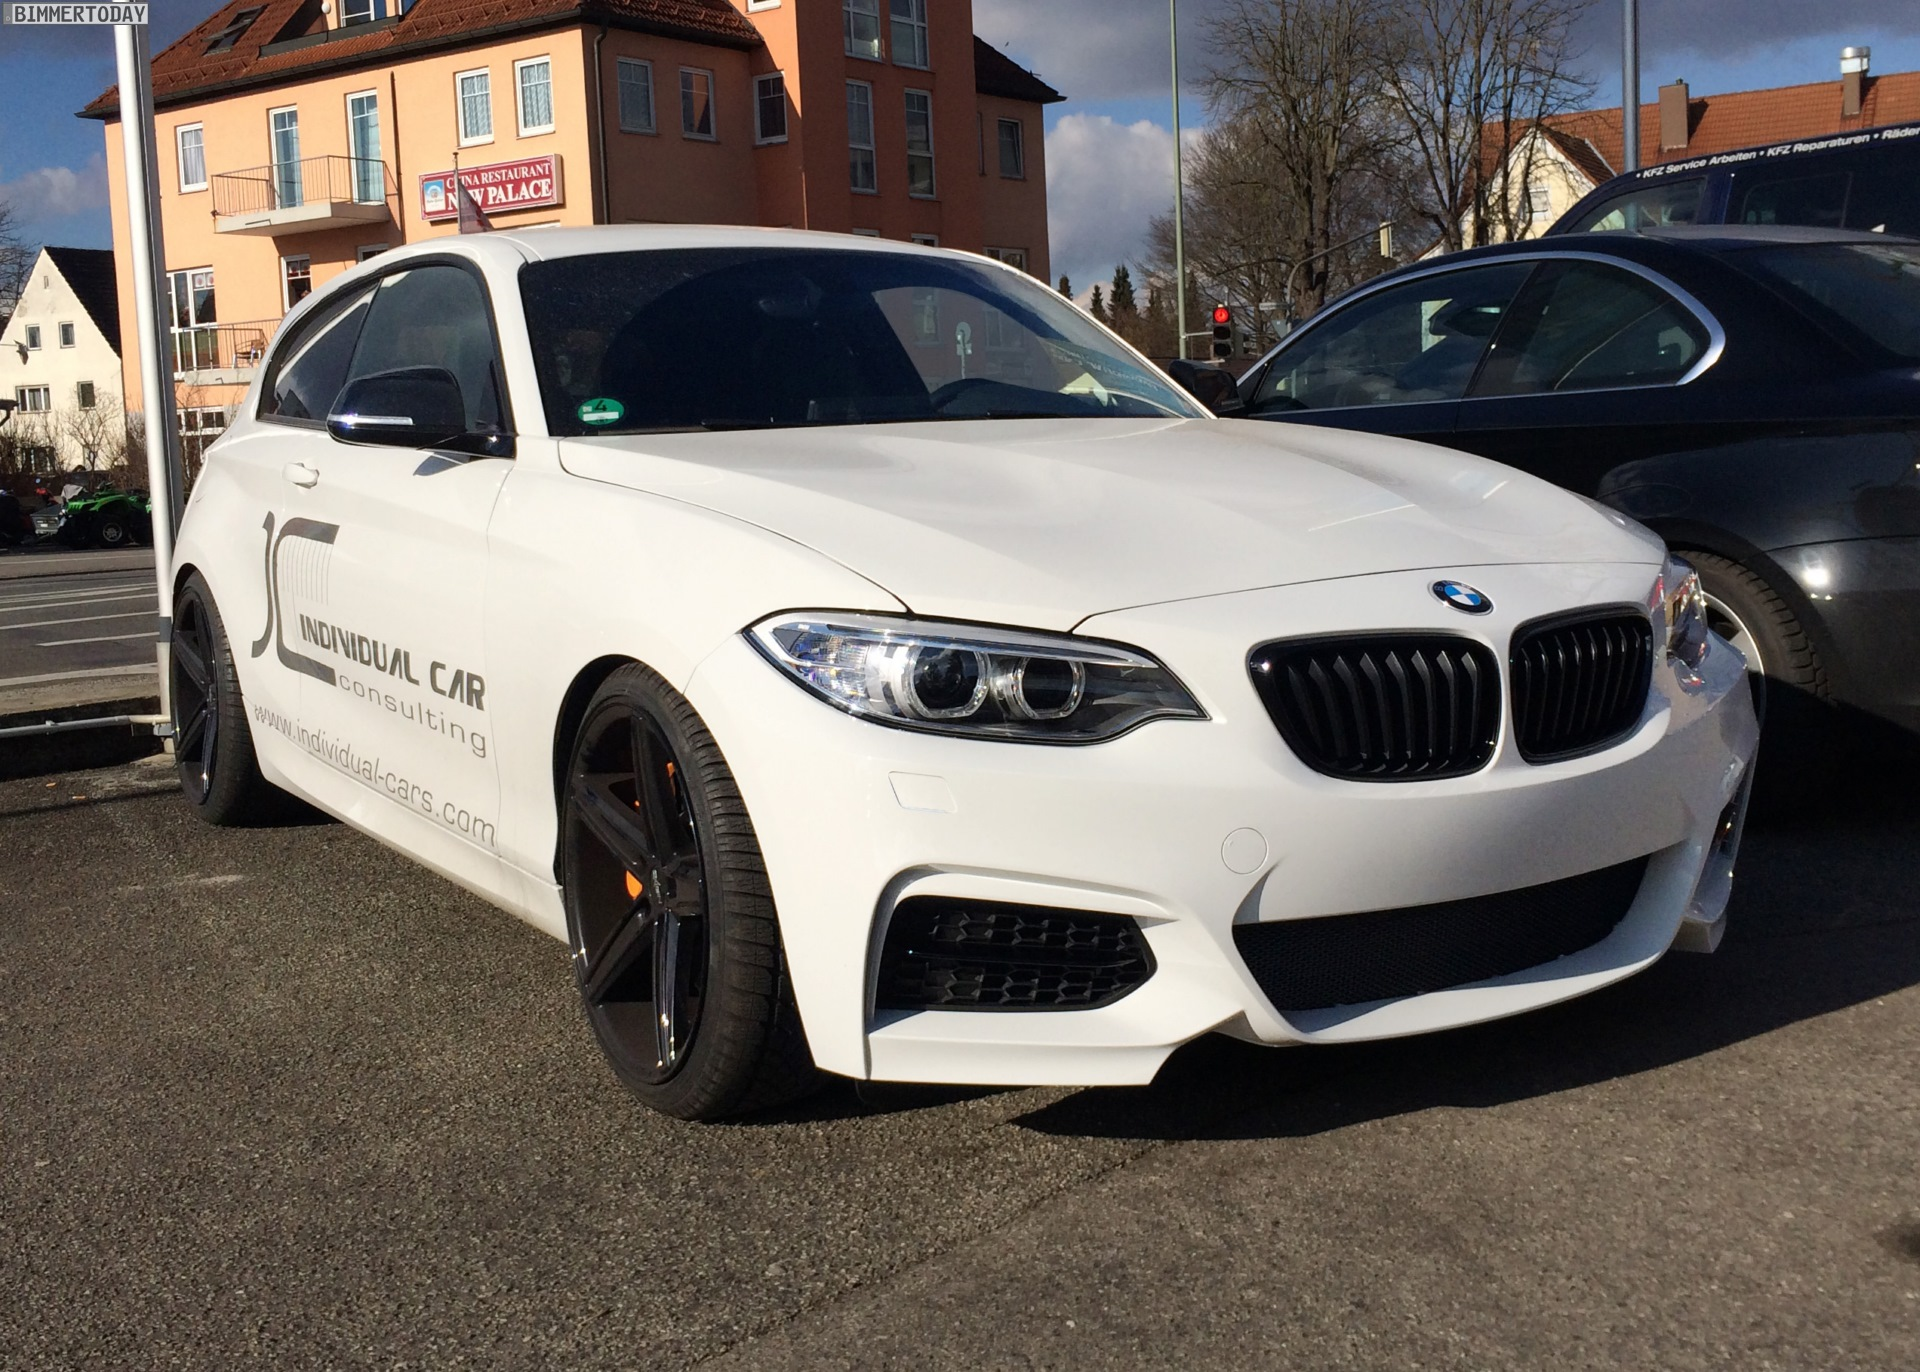 2015 - [BMW] Série 1 restylée [F20/21] - Page 6 BMW-1er-F20-F21-Front-Umbau-2er-F22-Design-Tuning-Individual-Car-Consulting-01